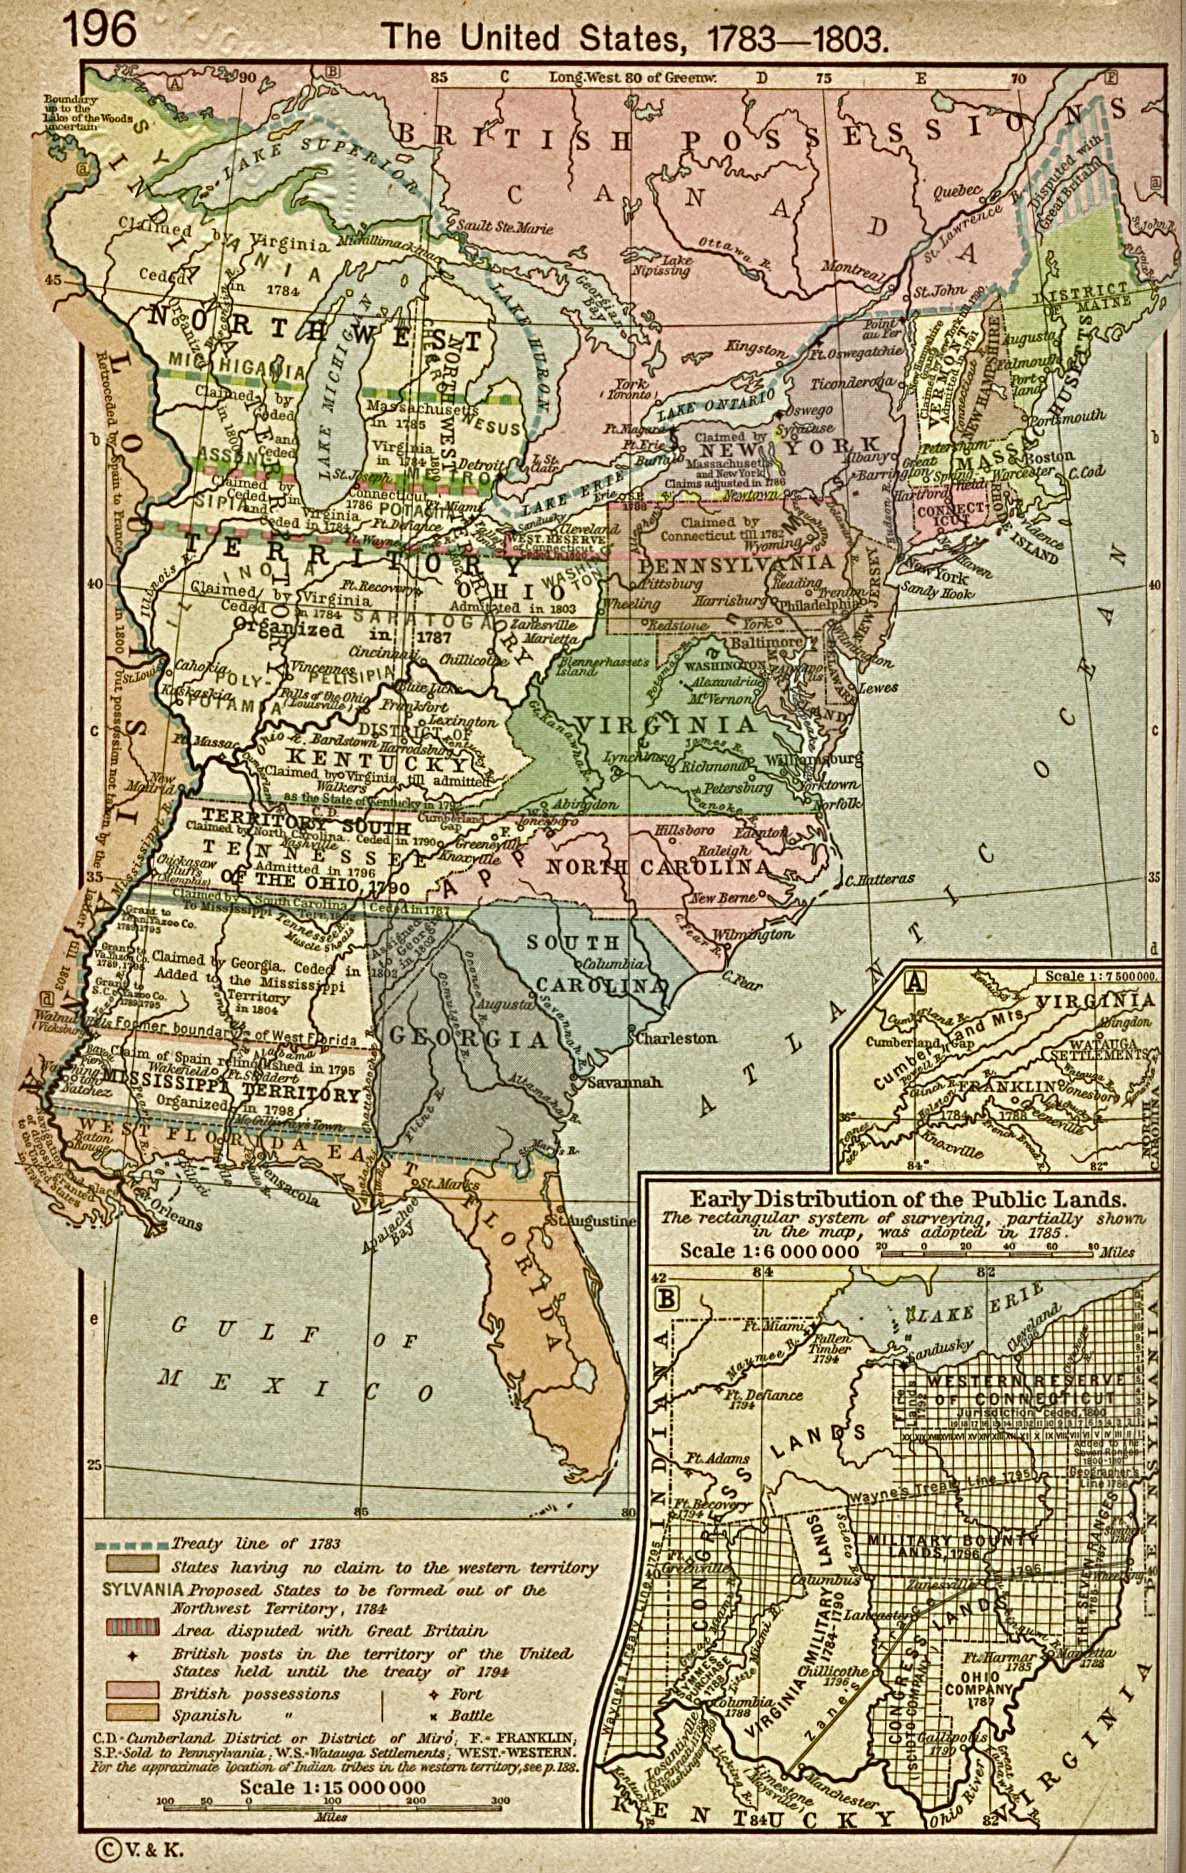 The United States 1783-1803